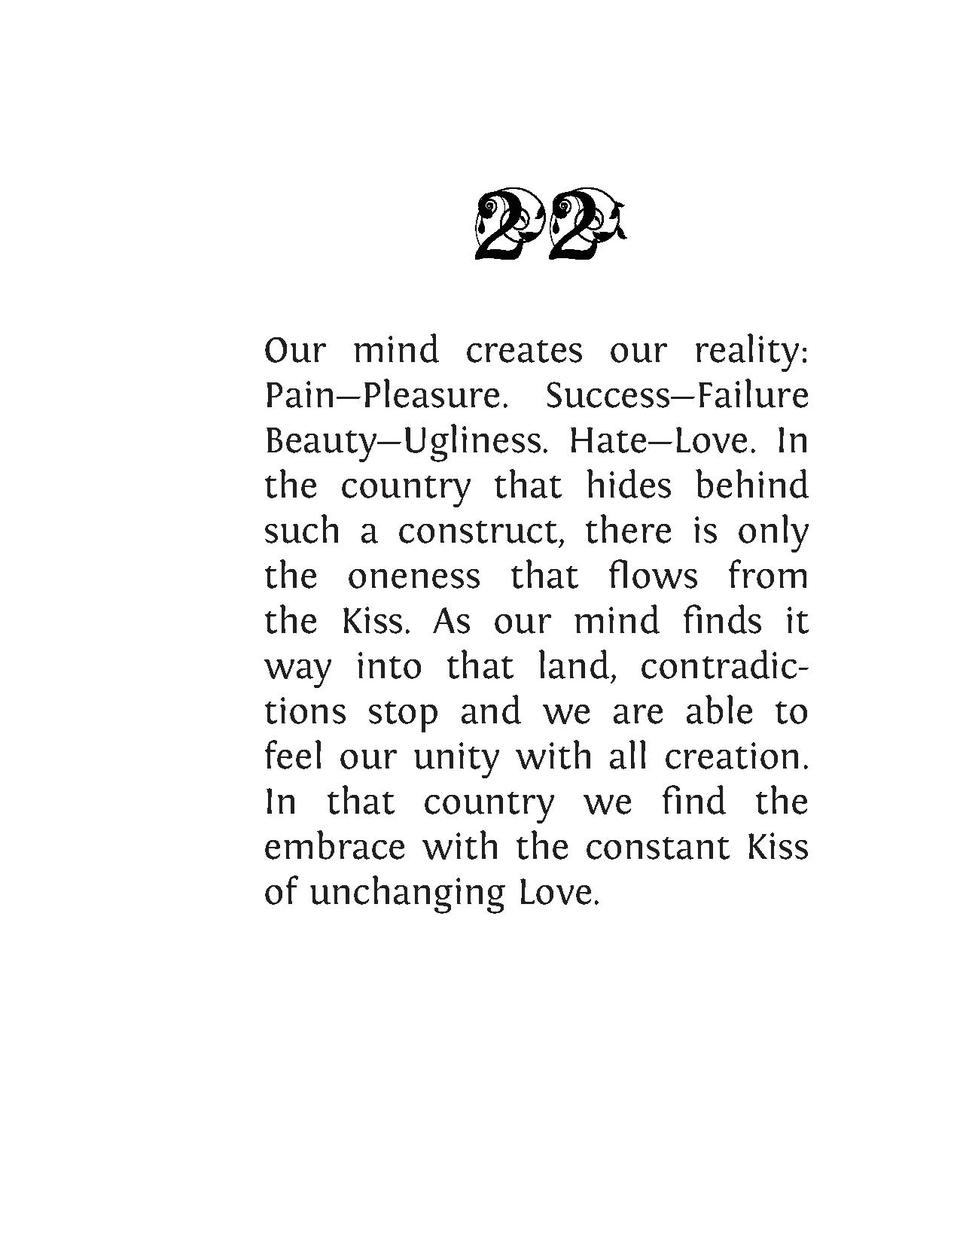 Our mind creates our reality  Pain   Pleasure. Success   Failure Beauty   Ugliness. Hate   Love. In the country that hides...